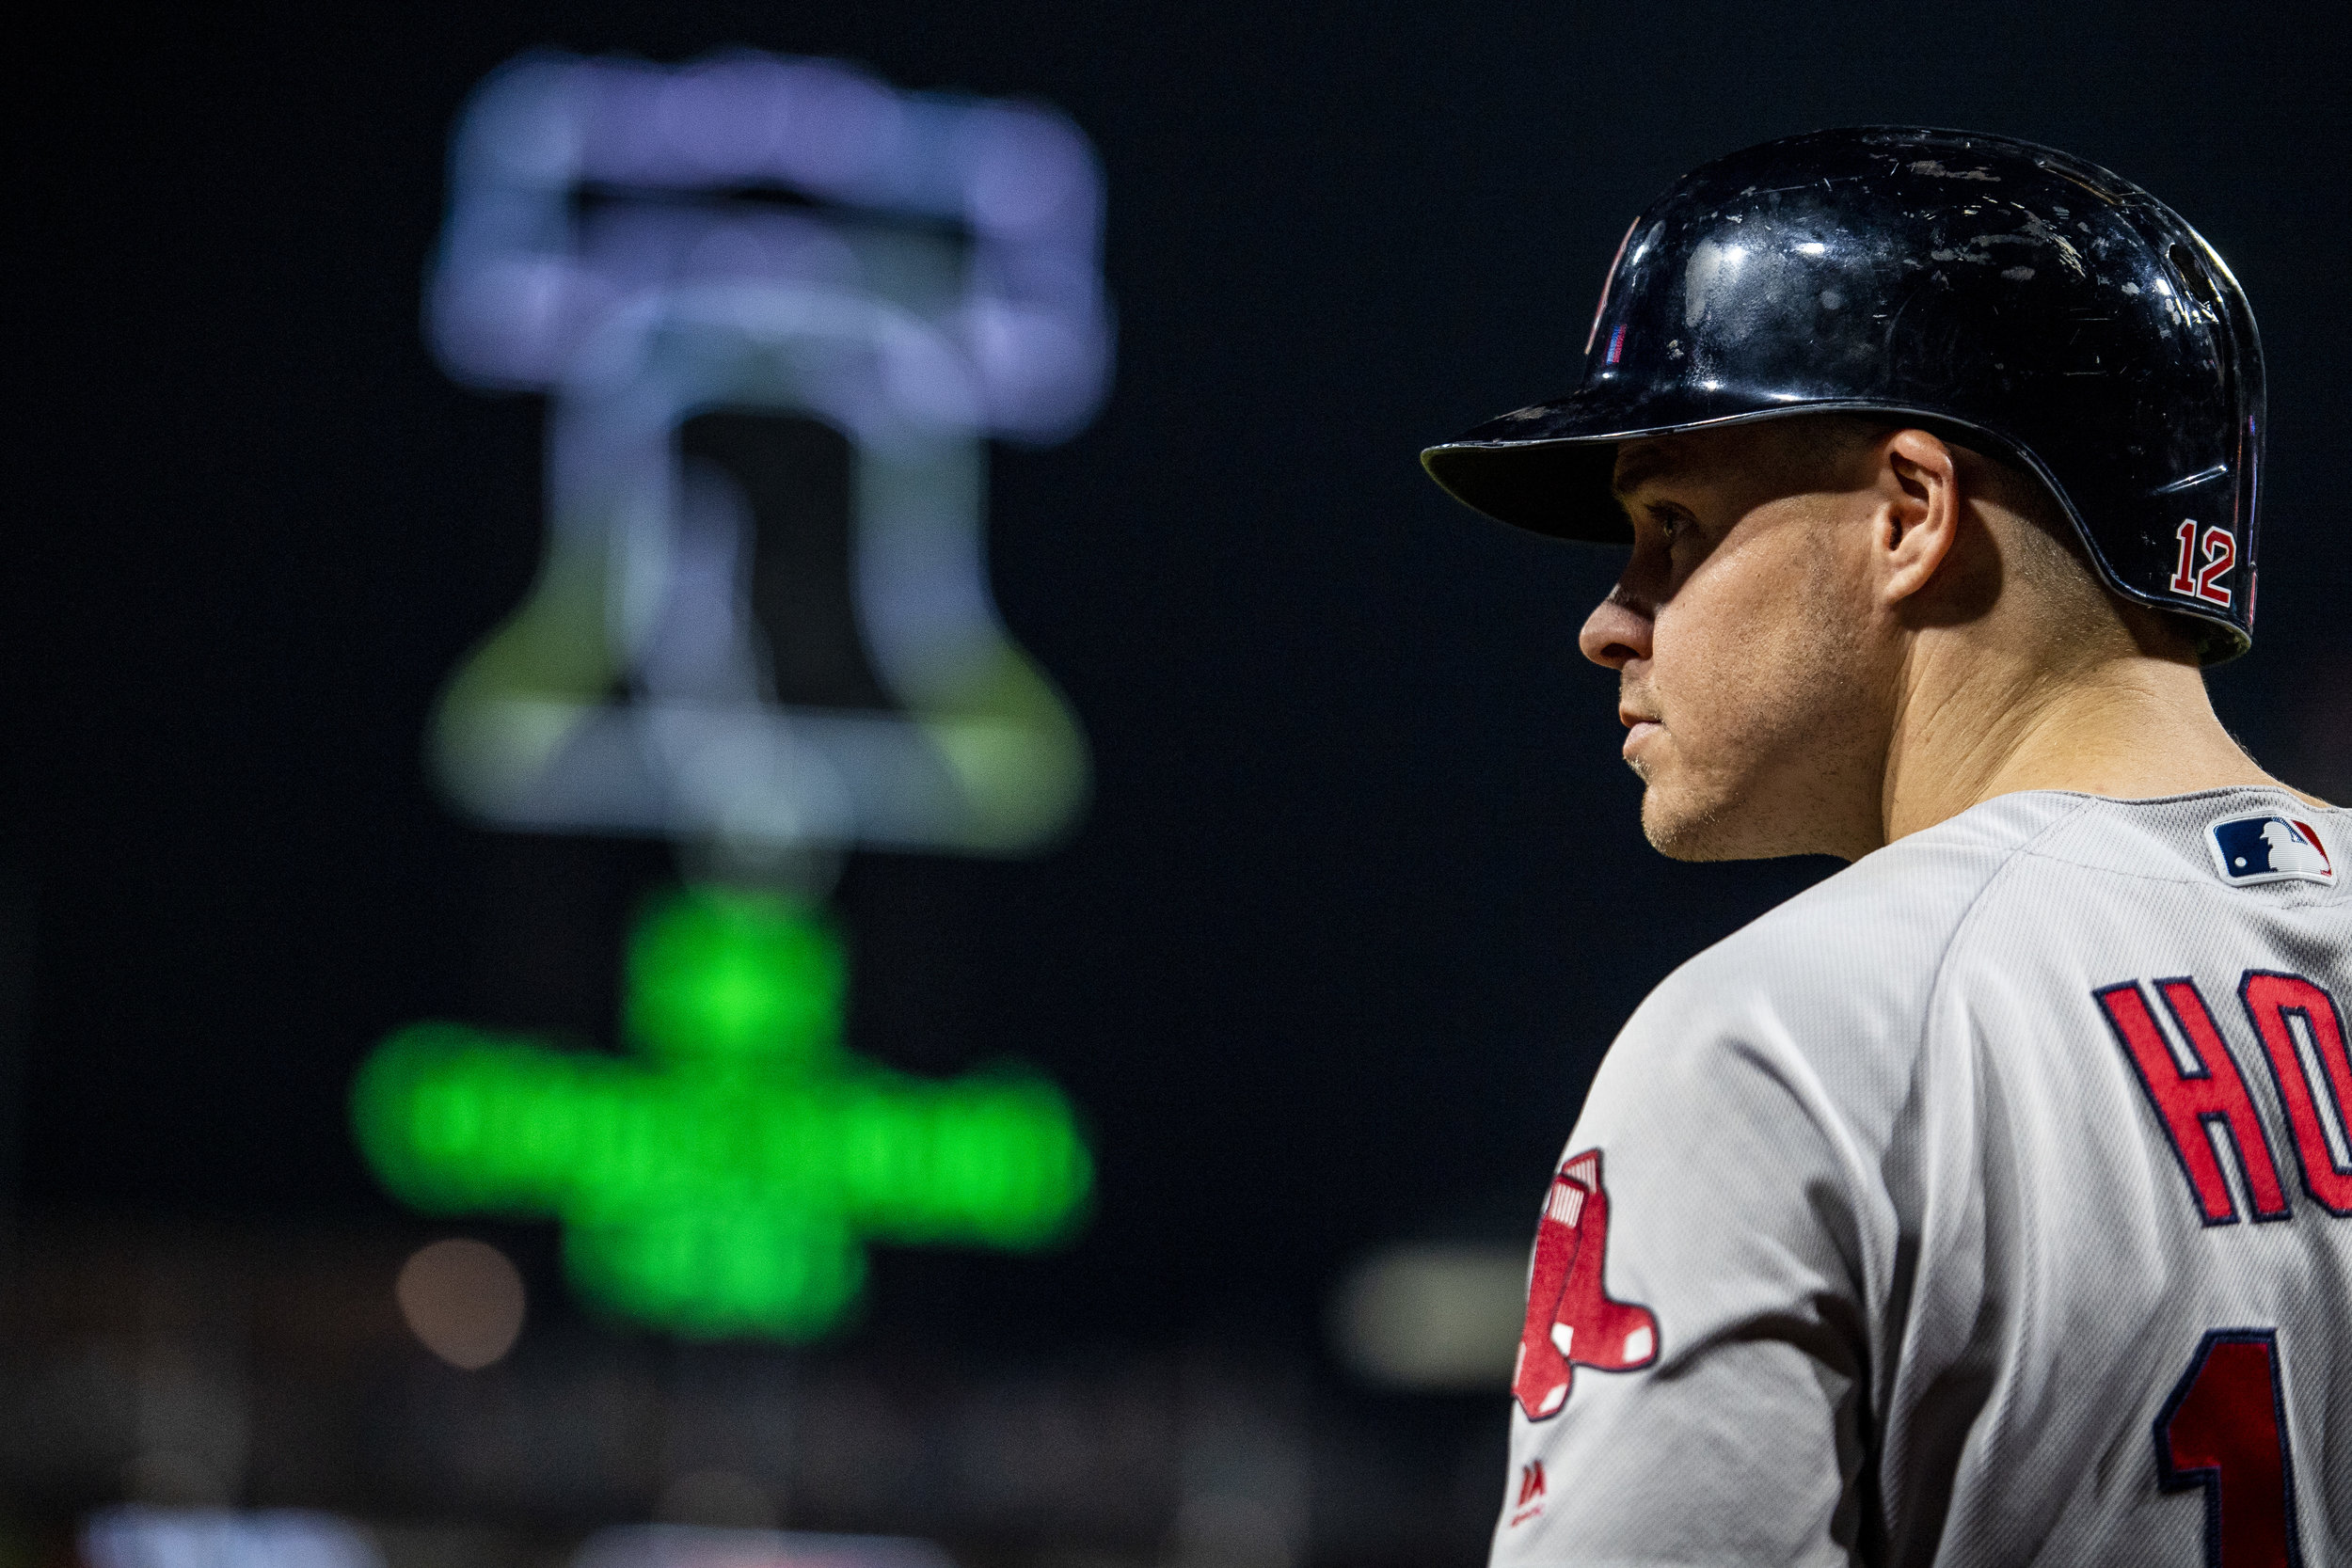 August 15, 2018, Philadelphia, PA: Boston Red Sox outfielder Brock Holt waits in the on-deck circle as the Boston Red Sox face the Philadelphia Phillies at Citizen Bank Park in Philadelphia, Pennsylvania on Wednesday, August 15, 2018. (Photo by Matthew Thomas/Boston Red Sox)